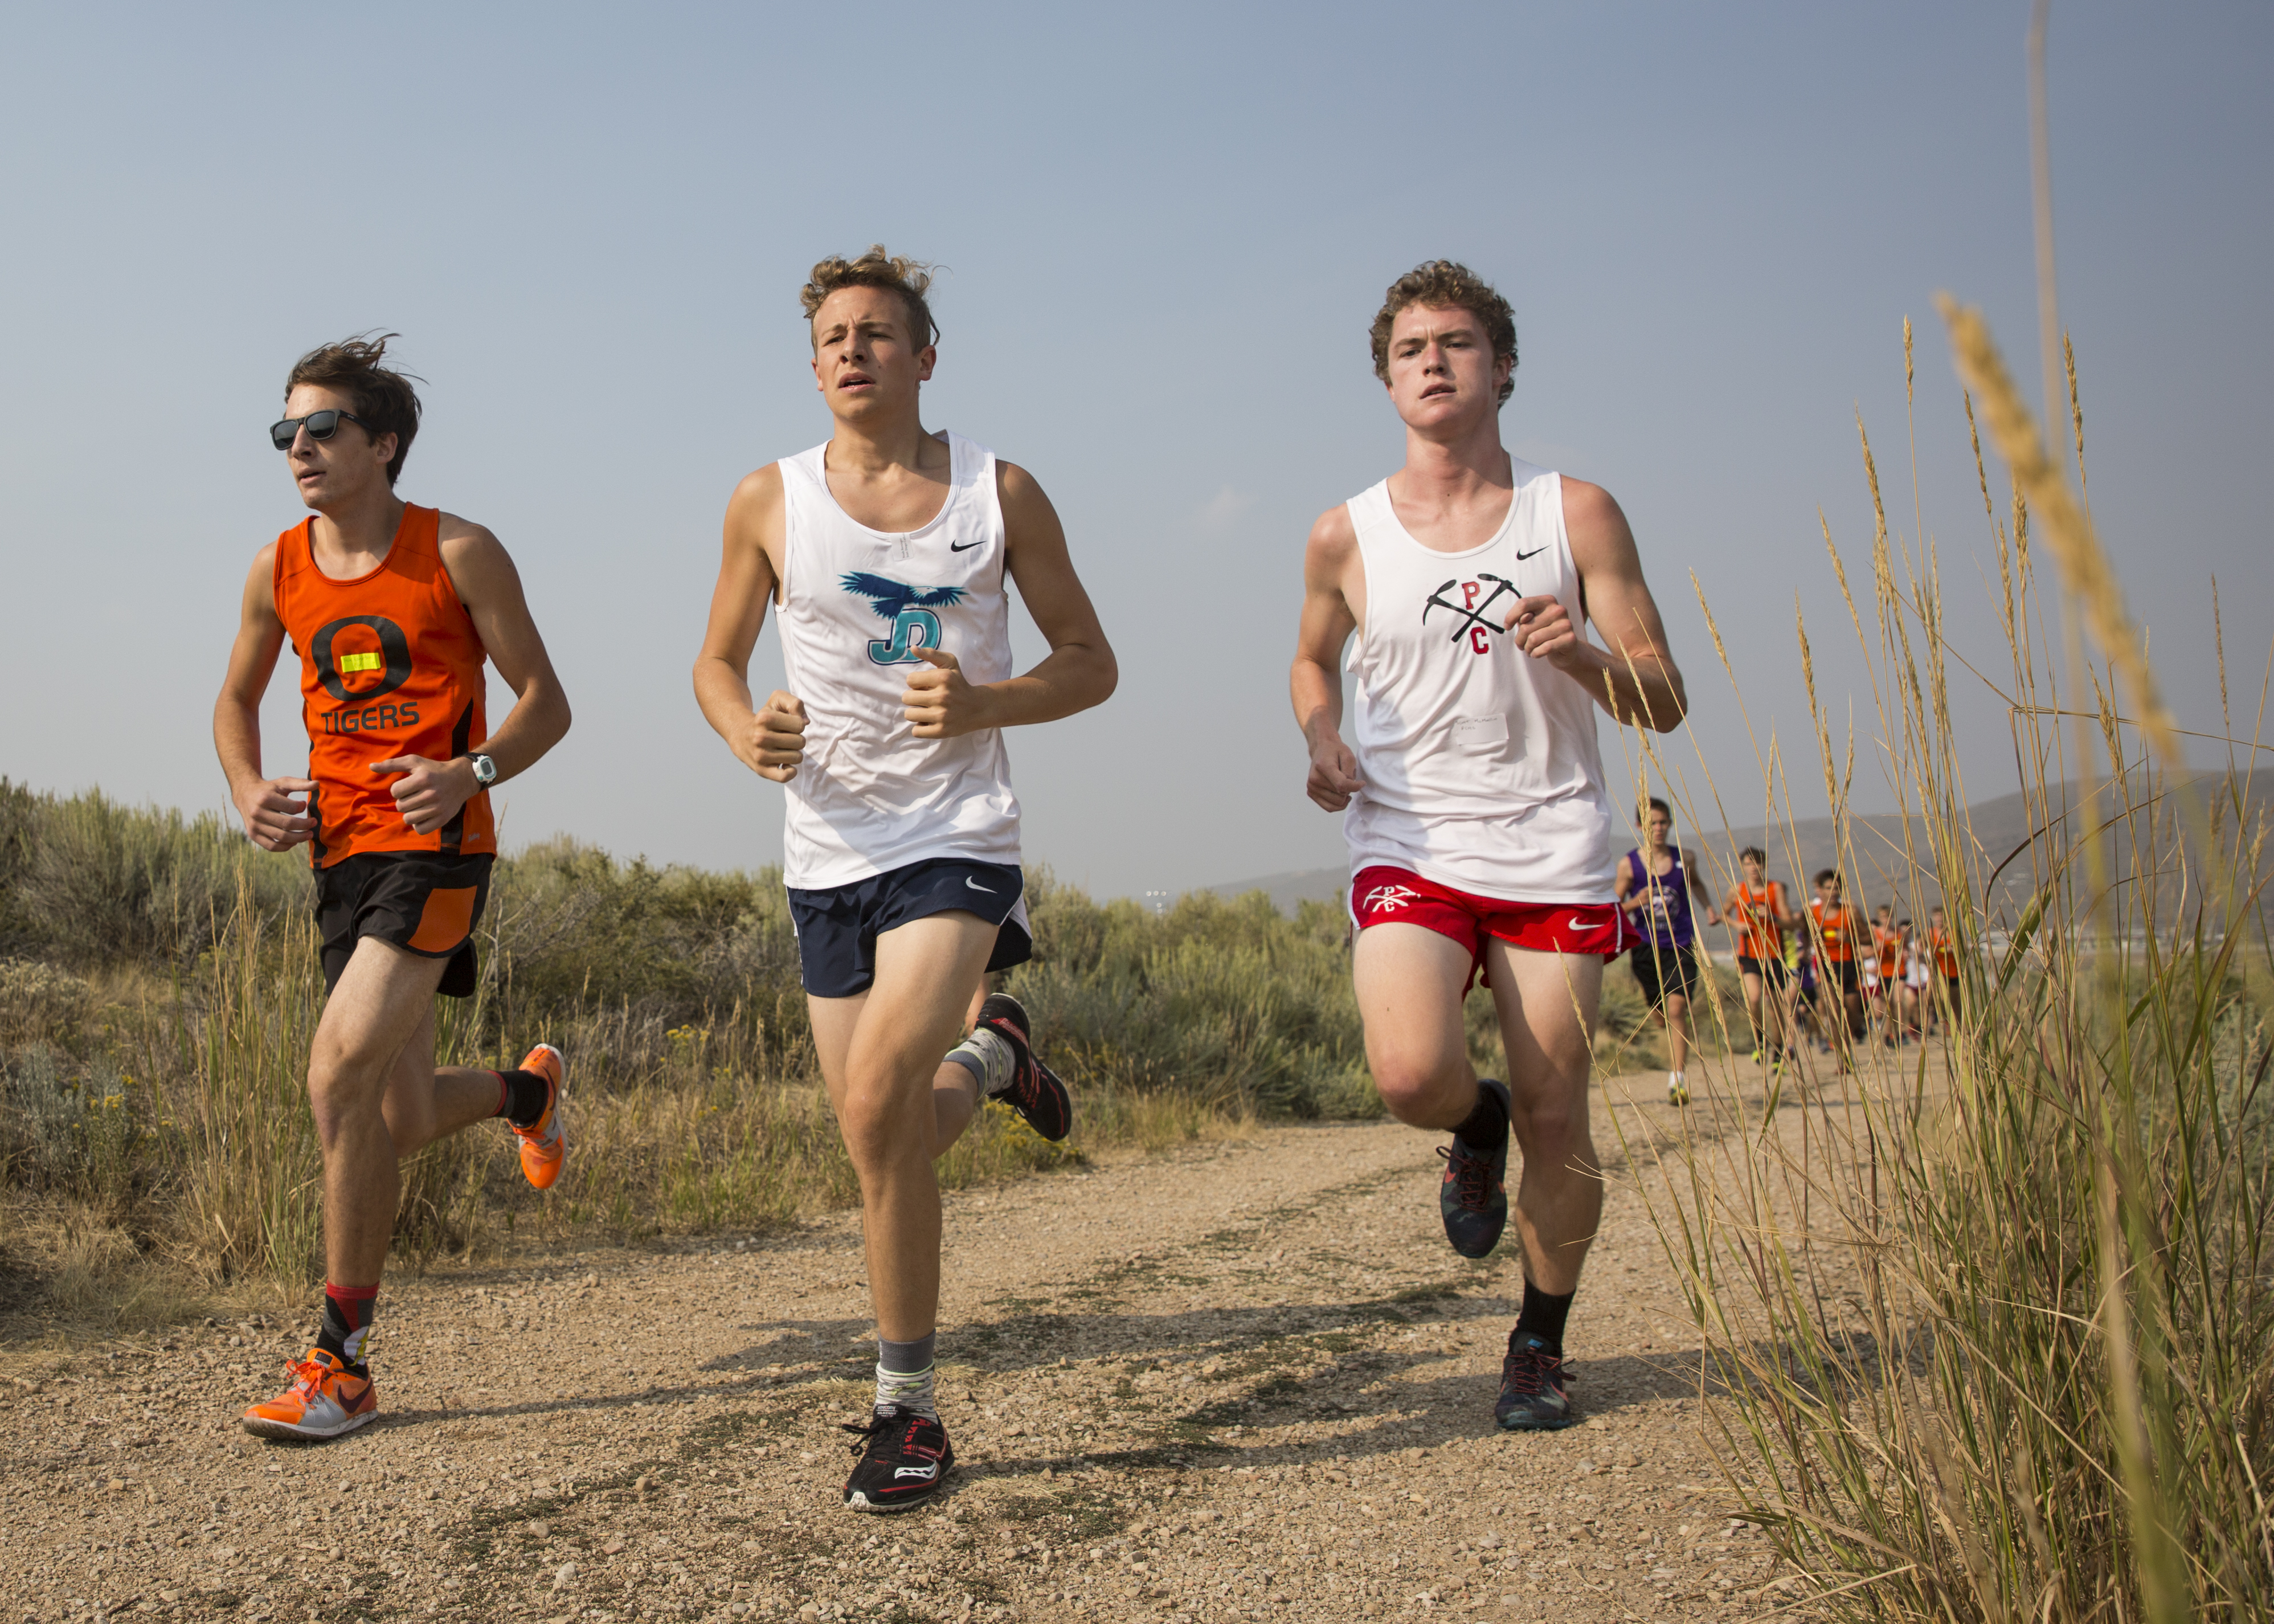 With a lot of returners, Park City is ready for the upcoming season